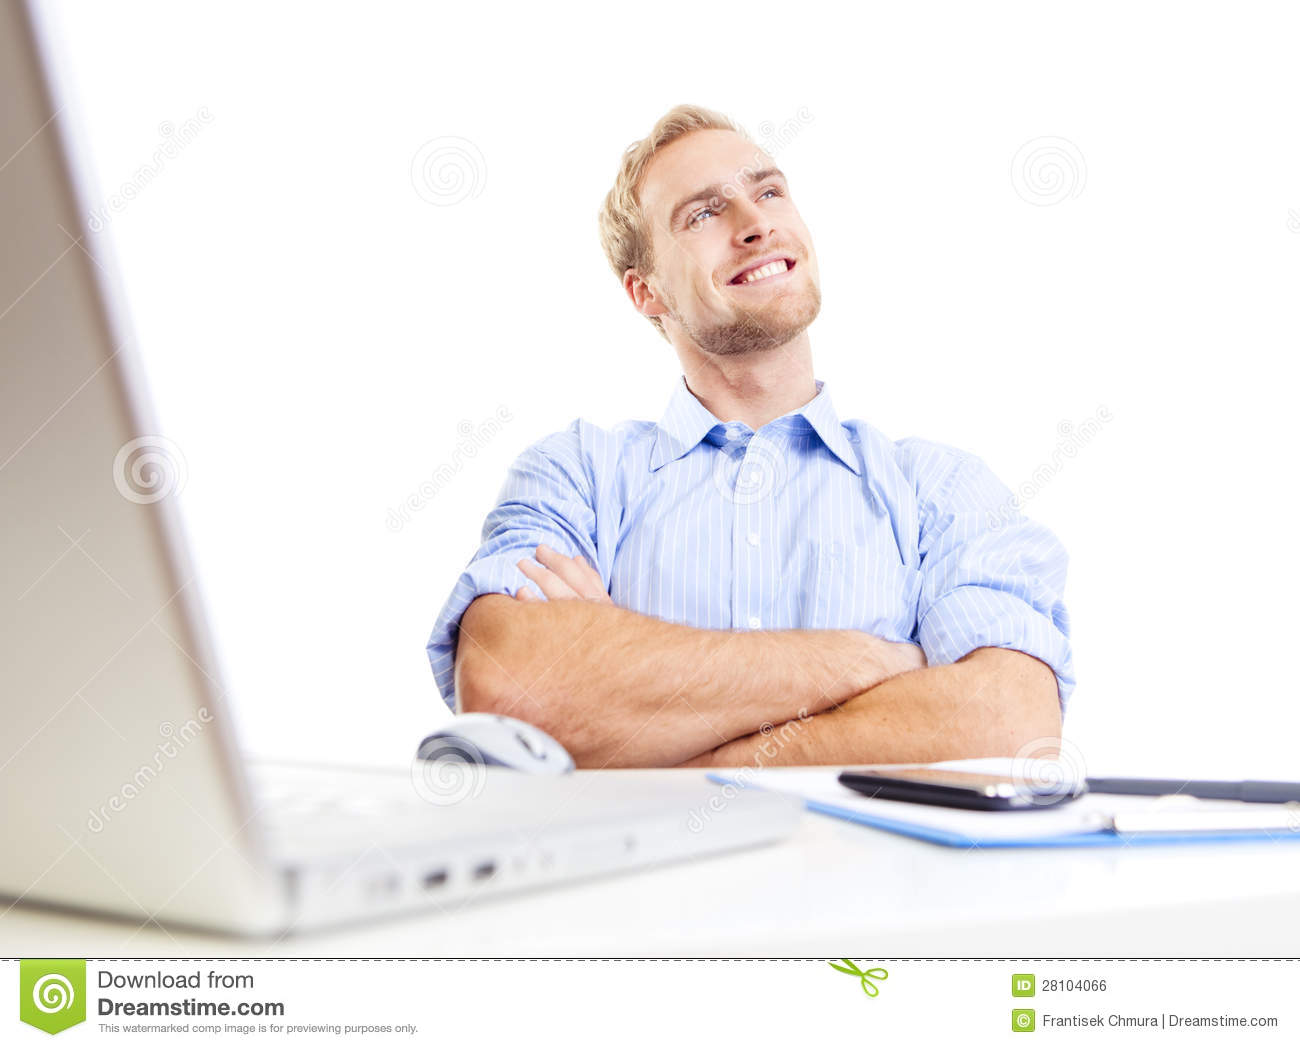 Young man at office daydreaming royalty free stock image for Www dreamhome com